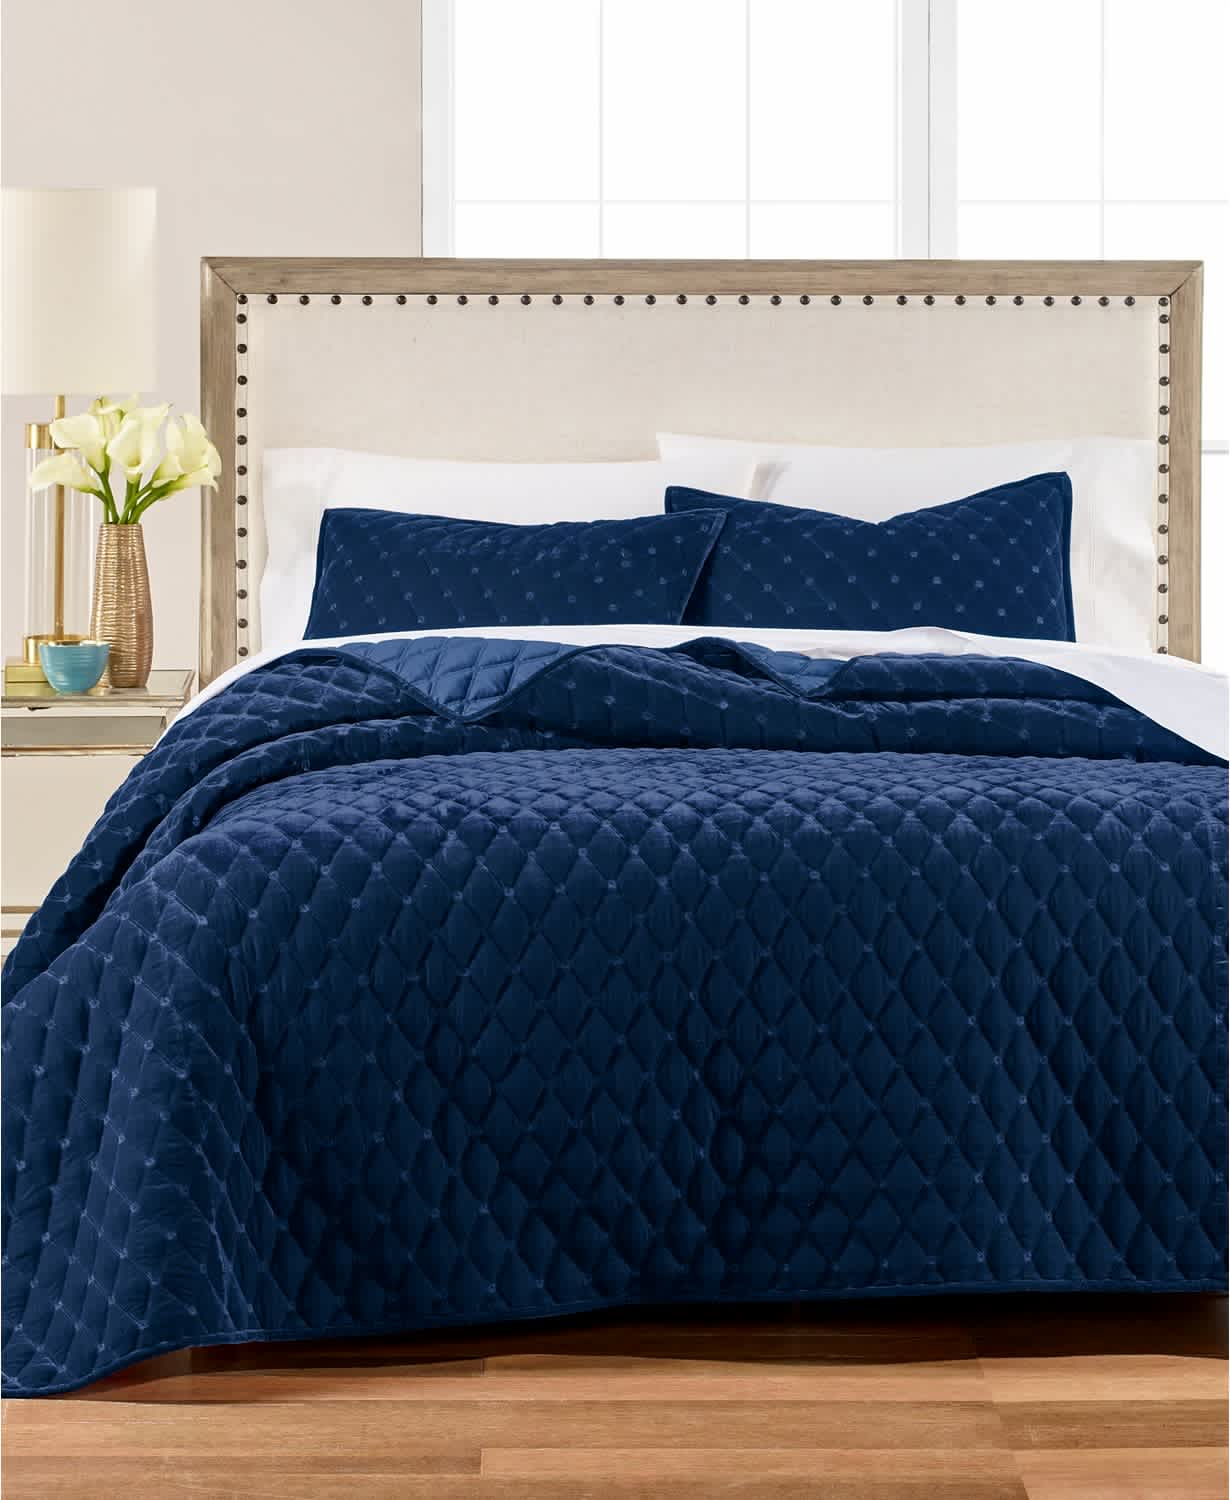 Martha Stewart Collection Bedding at Macy's